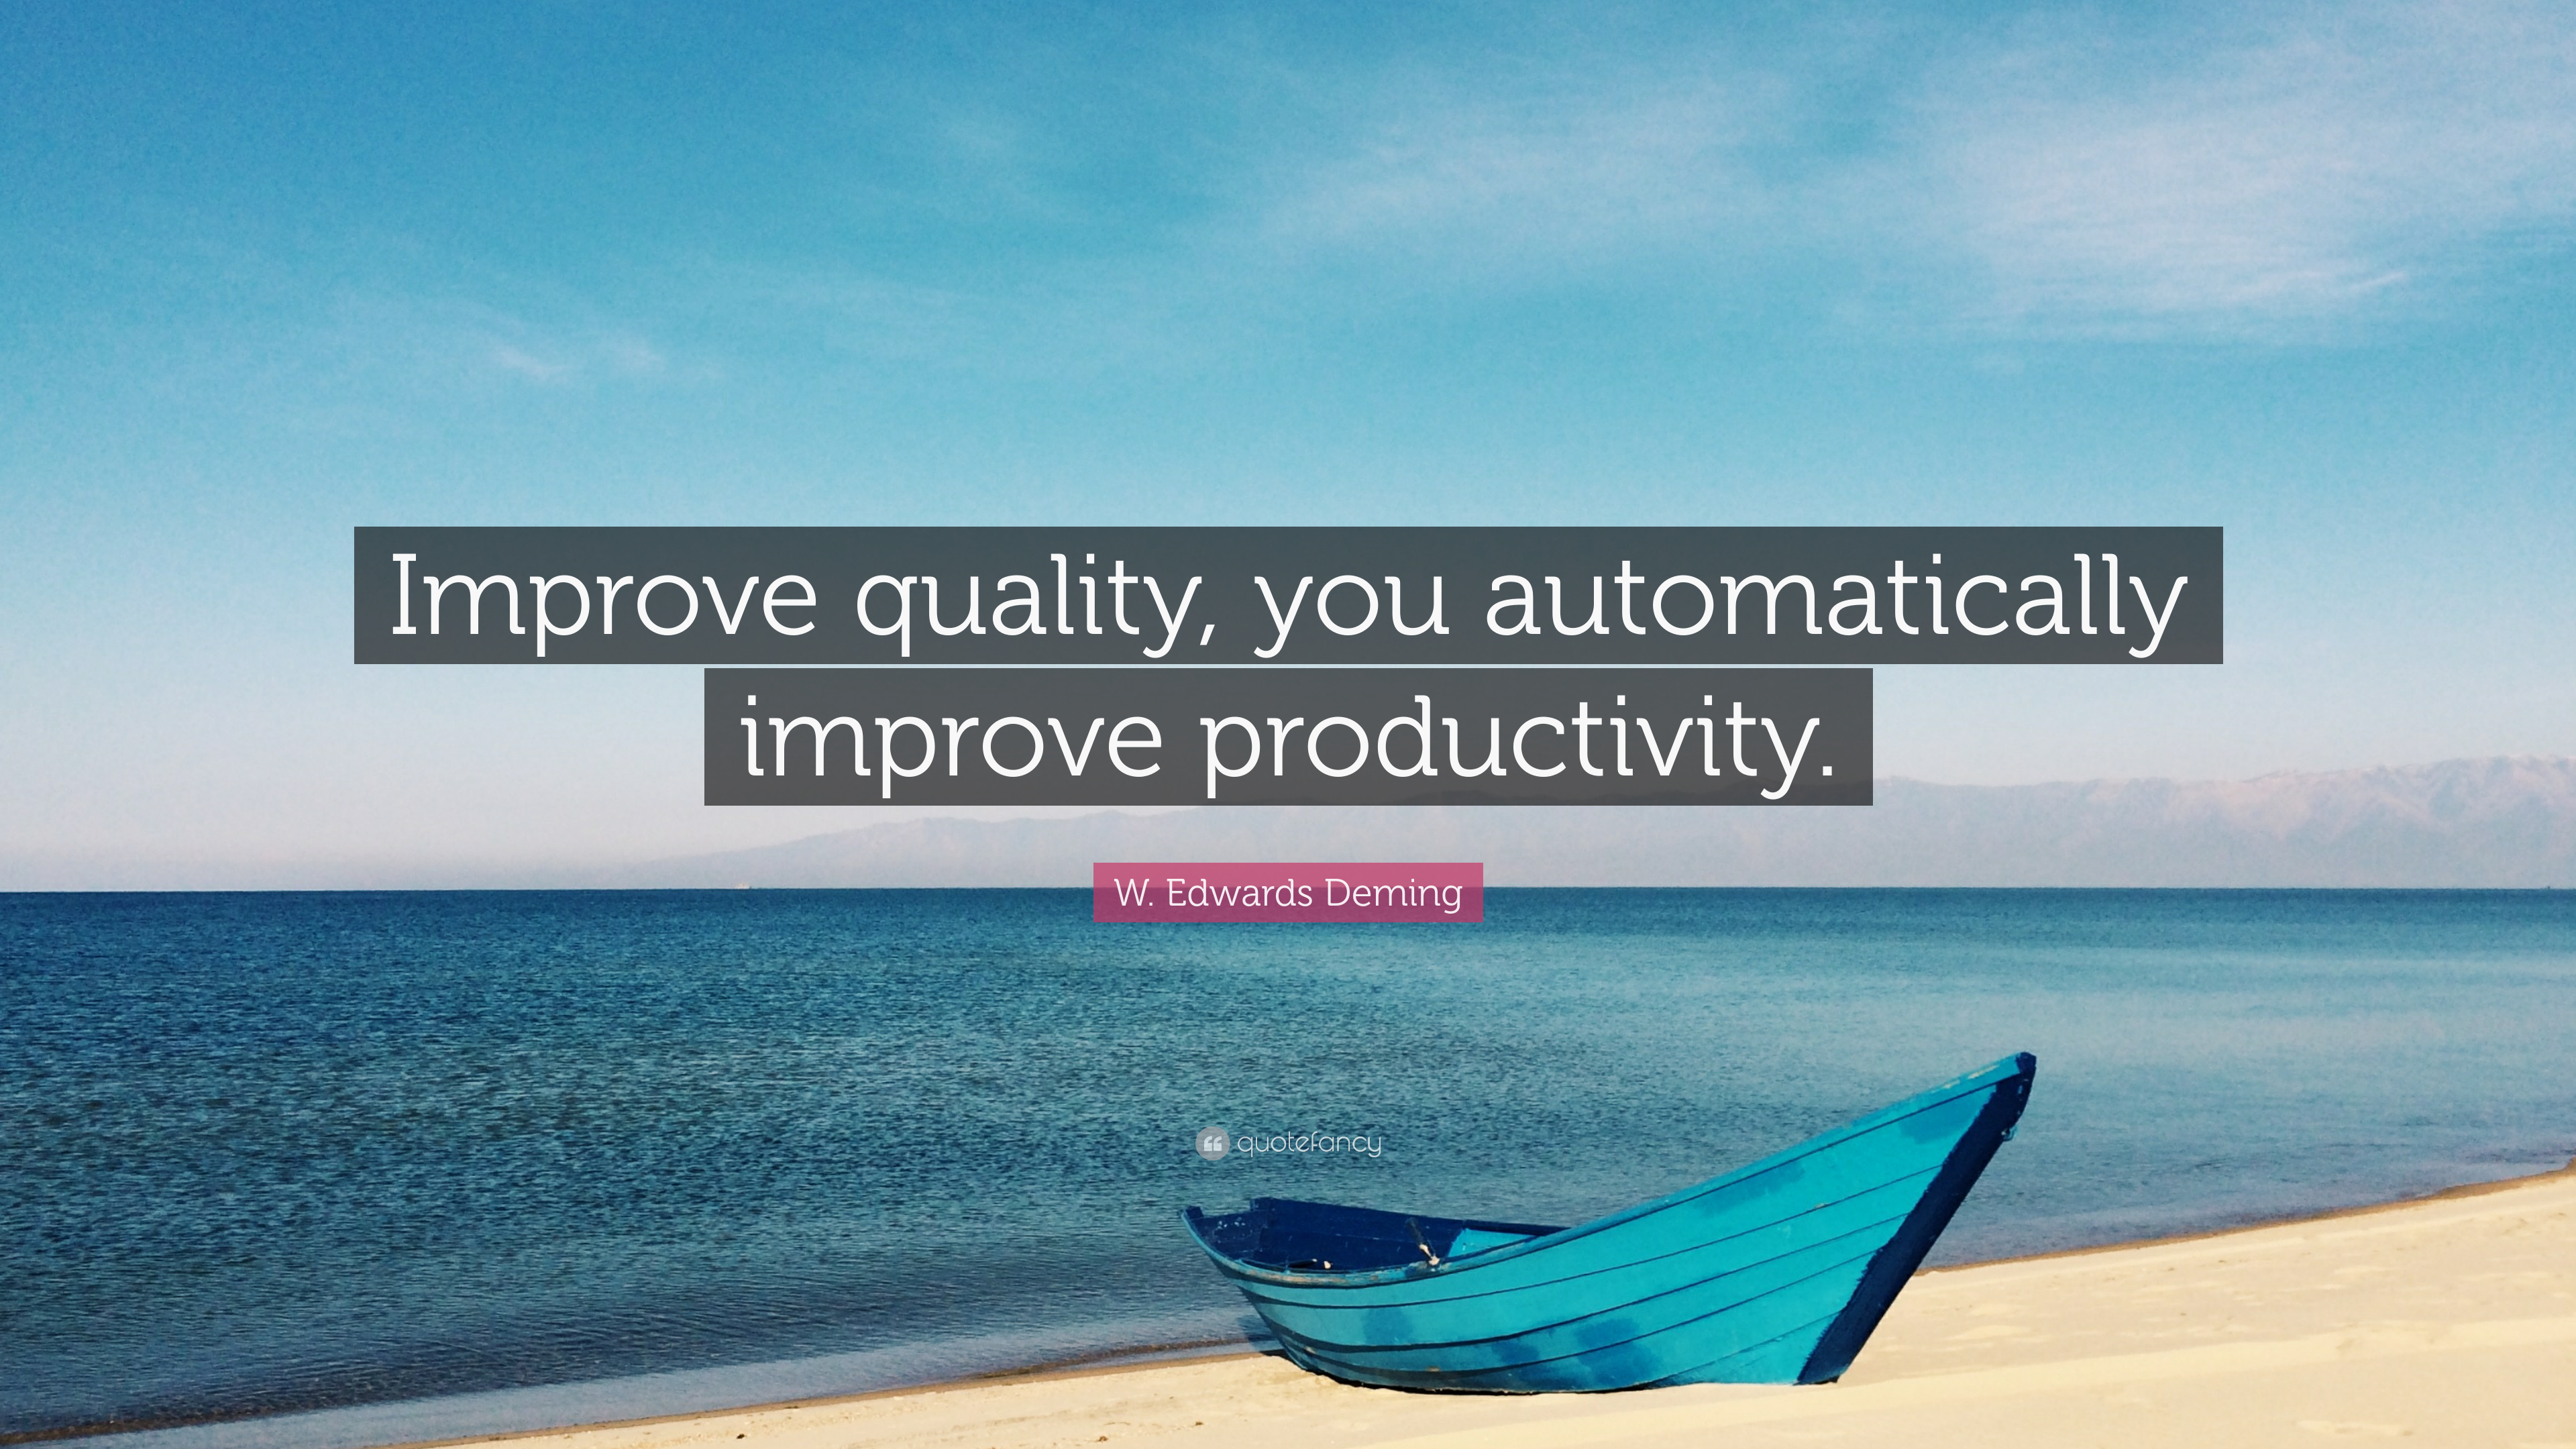 w edwards deming quote improve quality you automatically improve